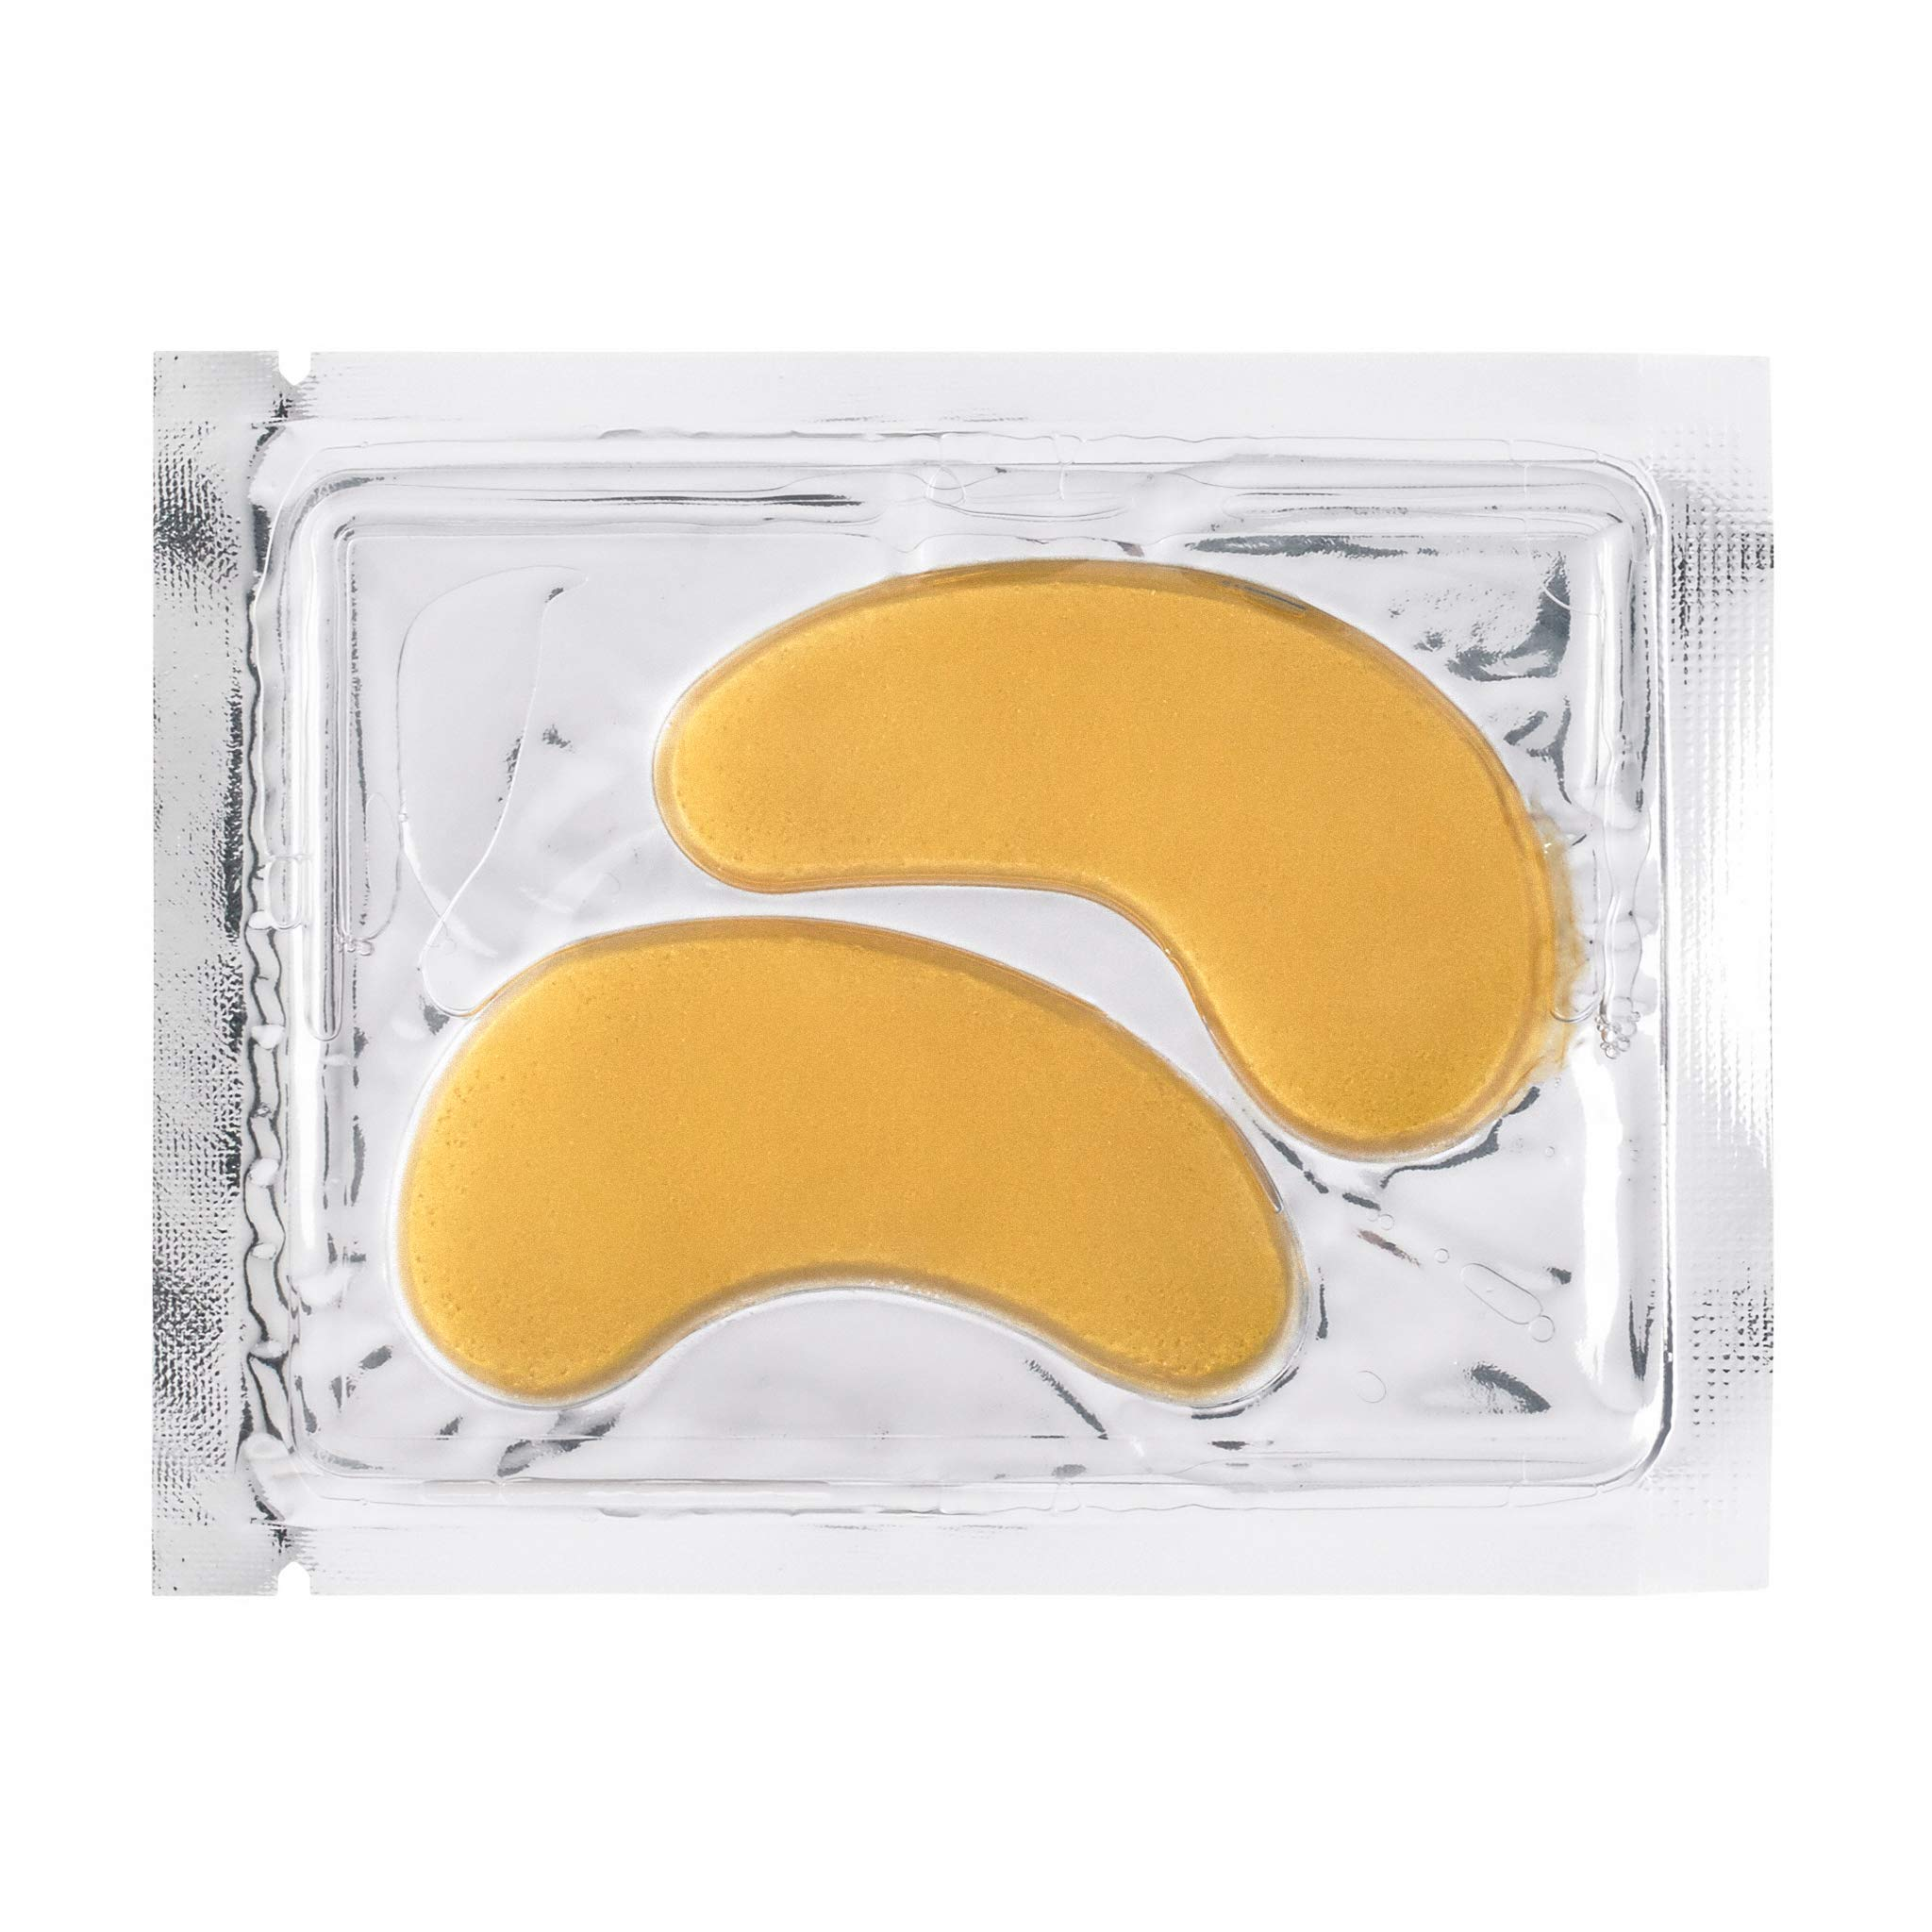 HYDRA-BRIGHT Golden Eye Treatment Mask - 5 masks by MZ SKIN BY MARYAM ZAMANI MD (Image #2)